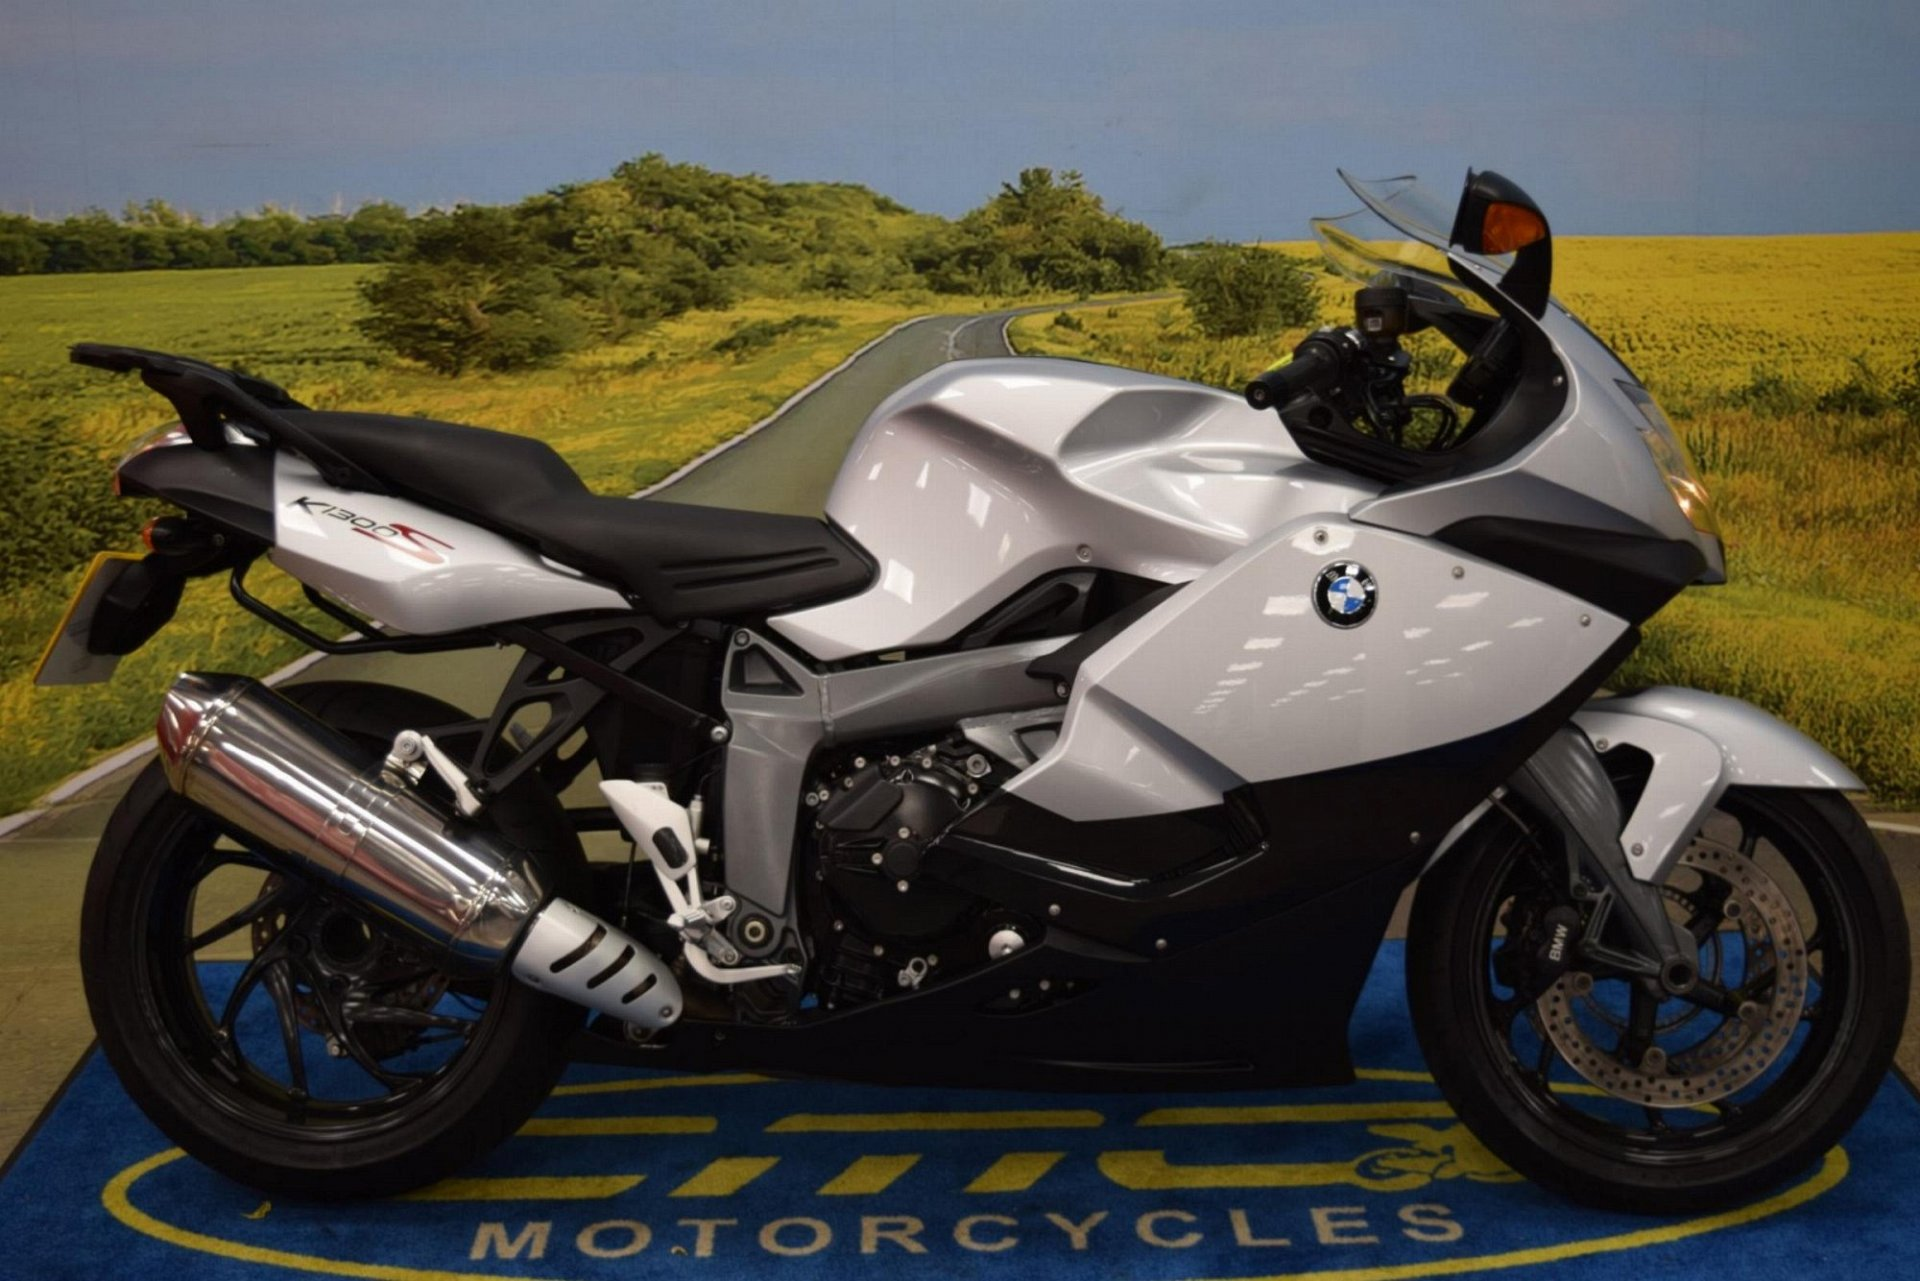 2012 BMW K 1300 S Sport for sale in Staffordshire